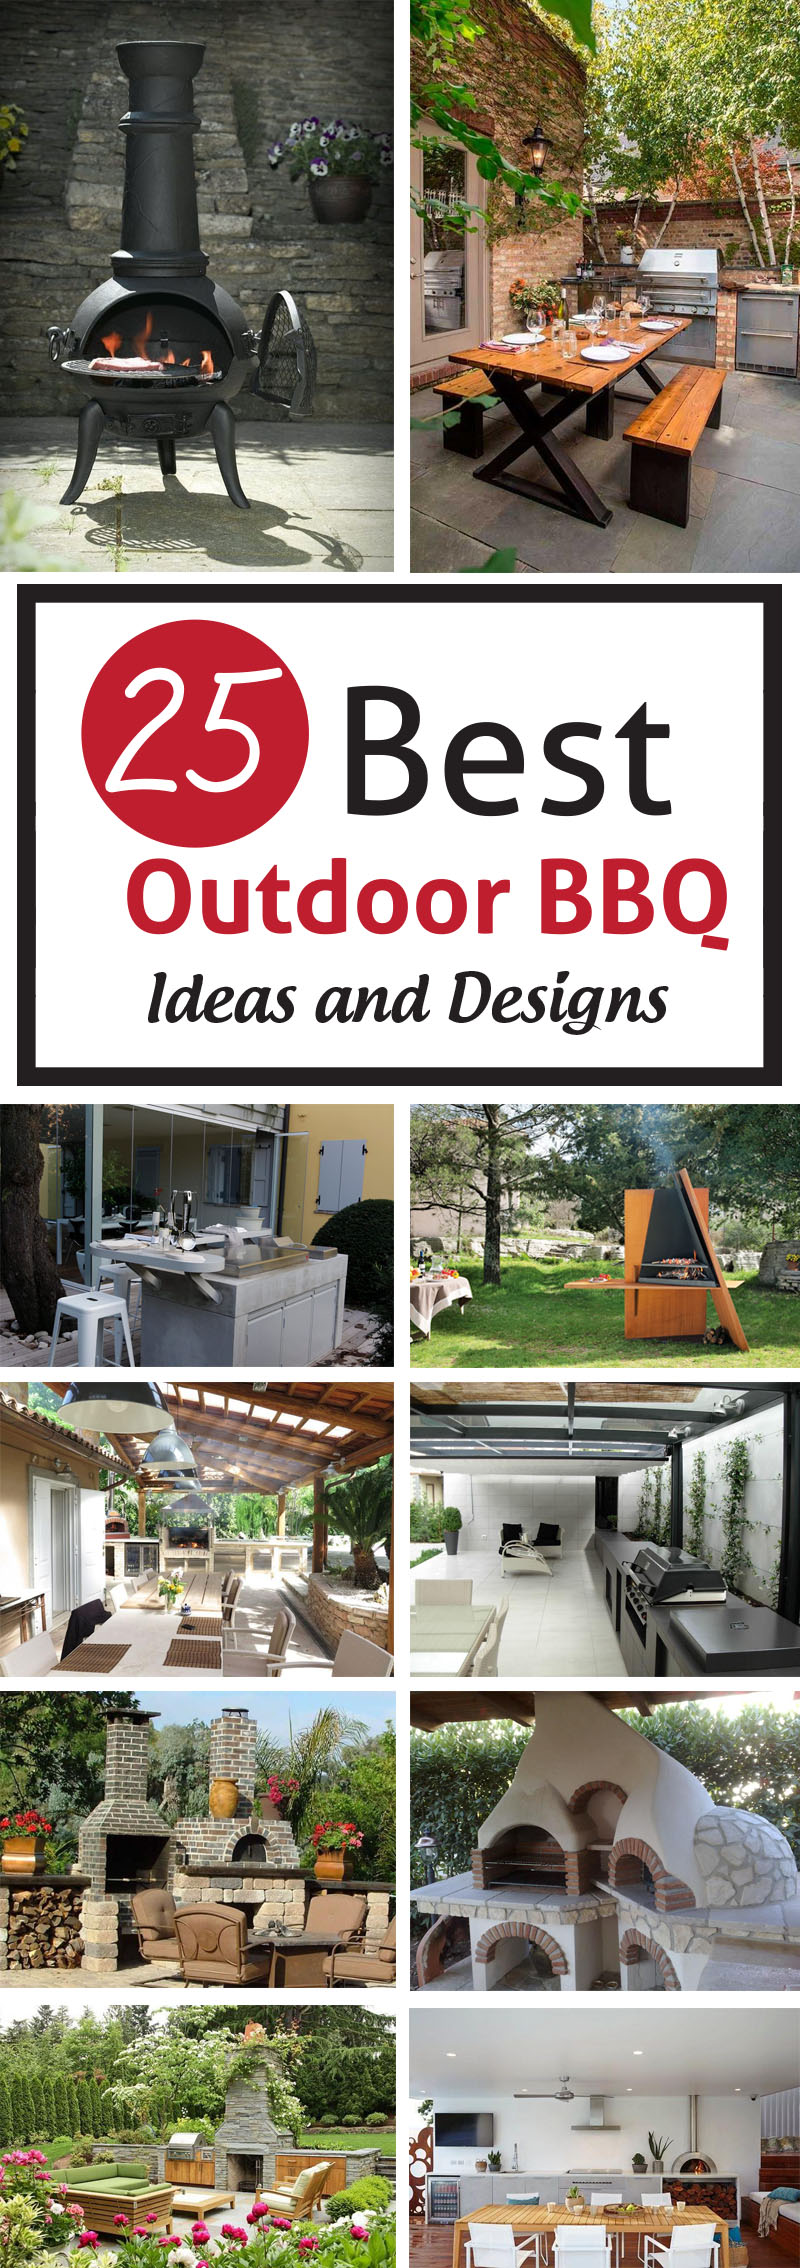 Best Outdoor BBQ Ideas and Designs